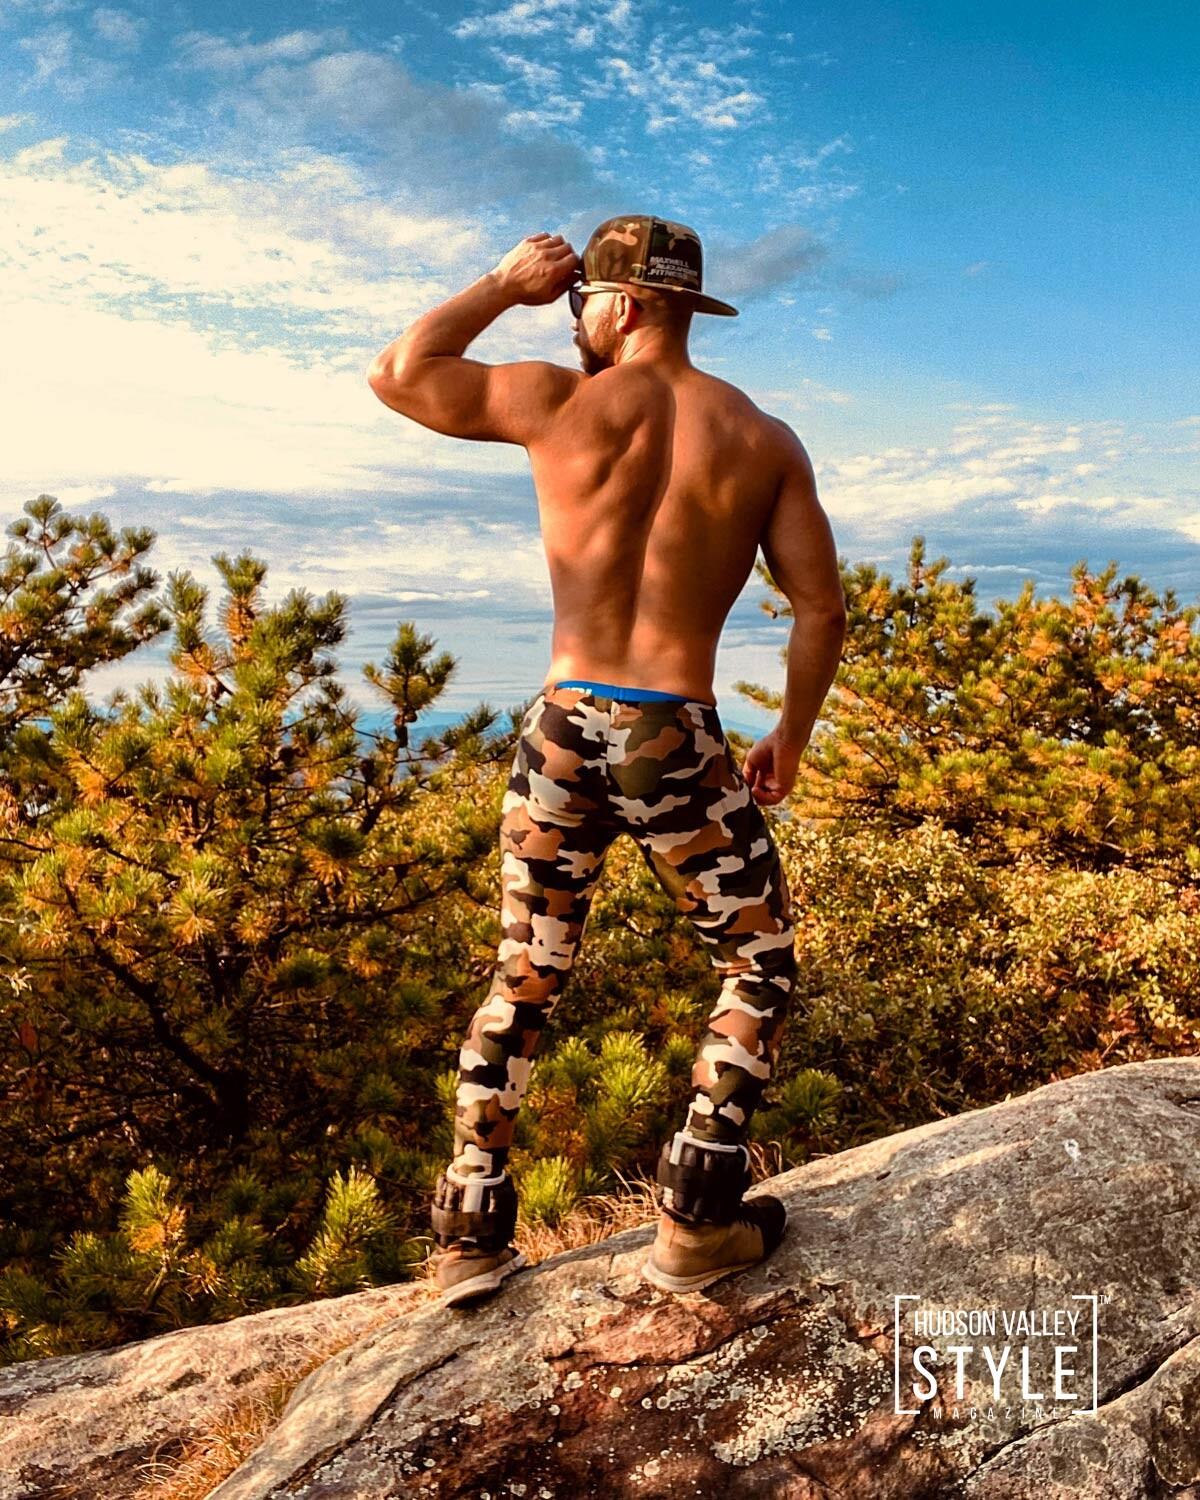 Why Hiking in the Hudson Valley is a Good Recreational Activity – by ISSA Certified Fitness Trainer, Bodybuilding Coach and Fitness Photographer Maxwell Alexander